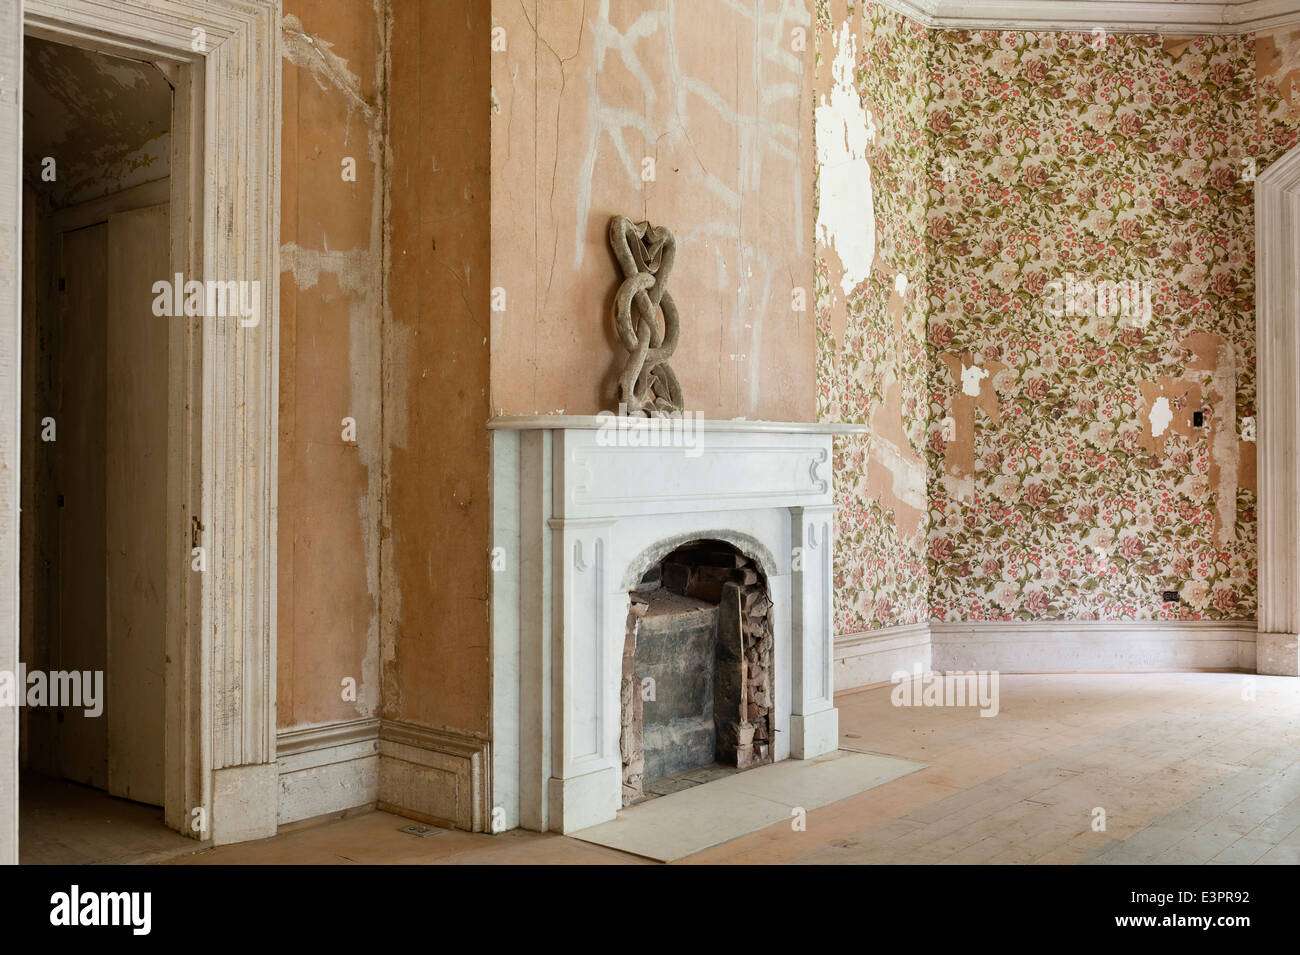 Old Bricked Up Fireplace In Empty Room With Peeling